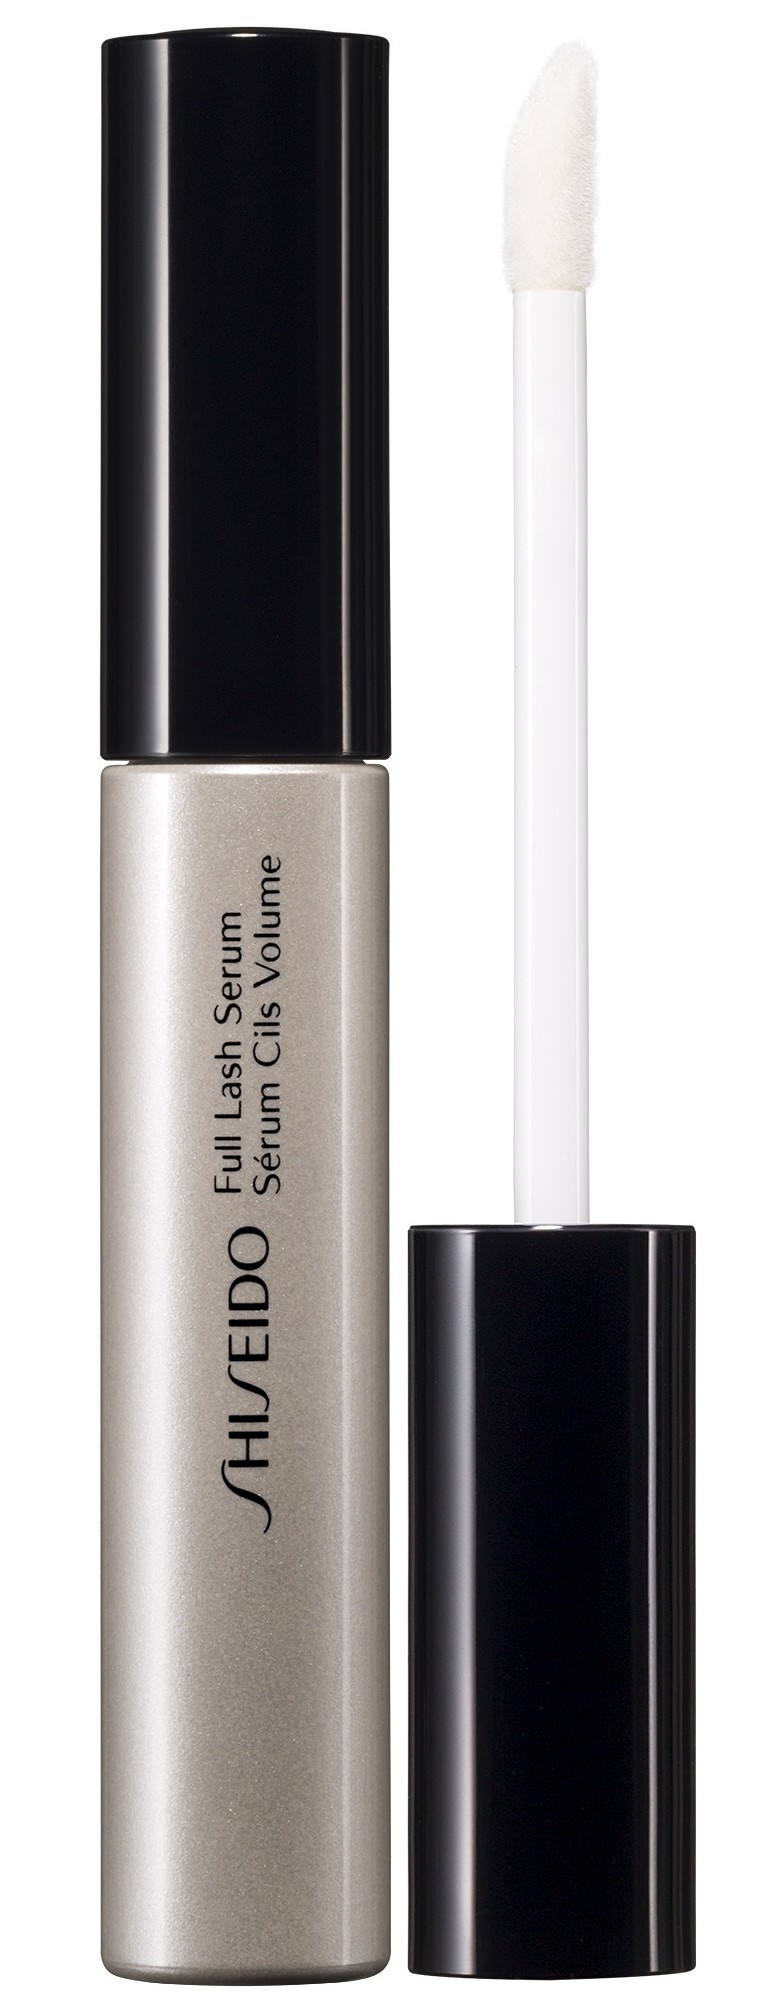 Full Lash Serum de Shiseido